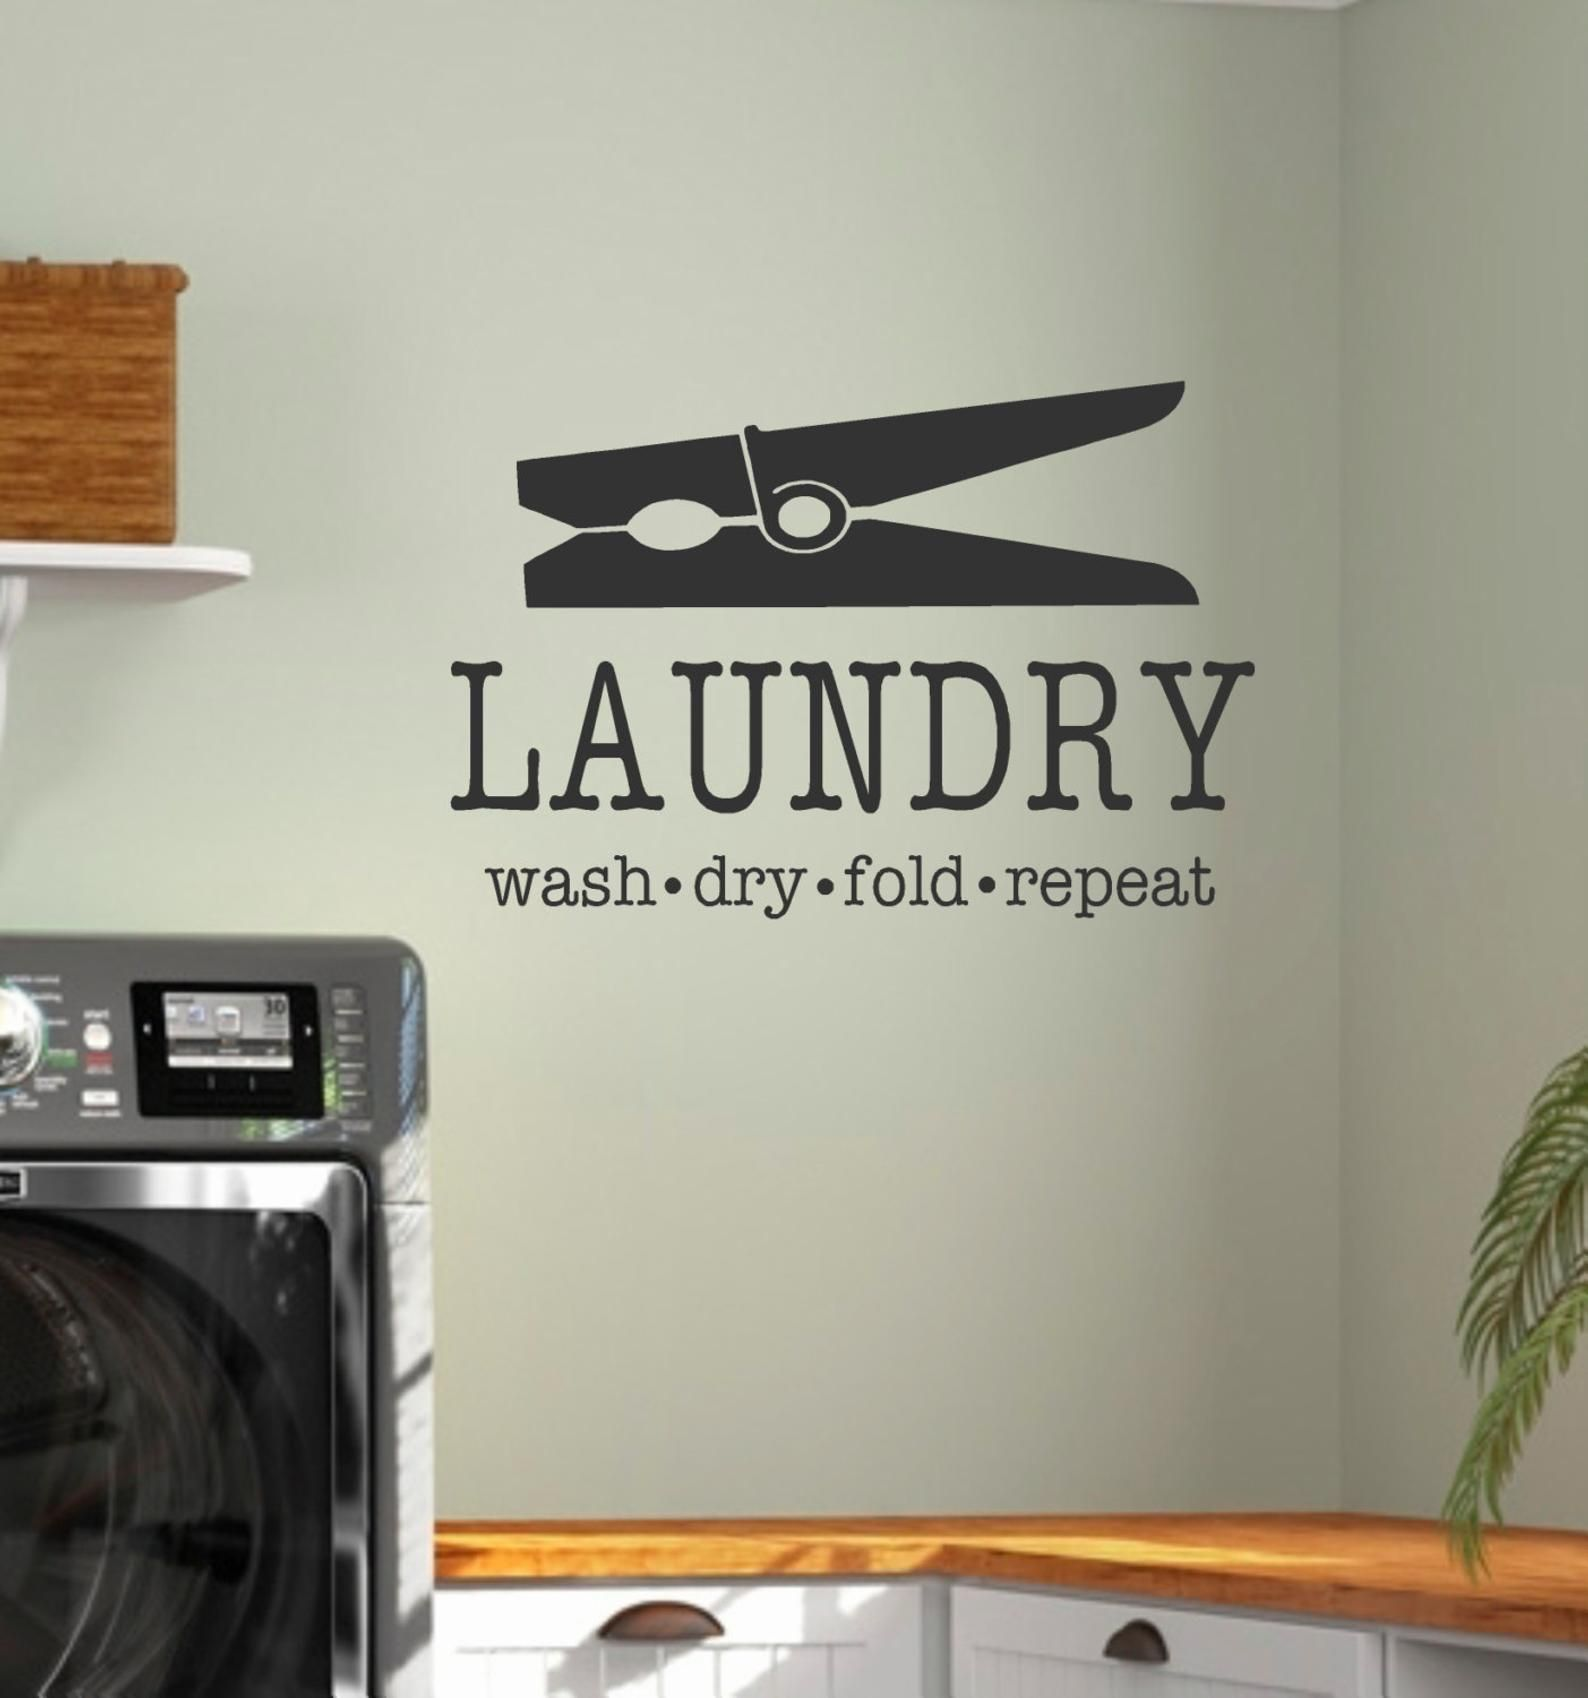 Laundry Vinyl Wall Decal Laundry Wash Dry Fold Repeat With Etsy Wall Decals Laundry Laundry Room Decor Laundry Humor